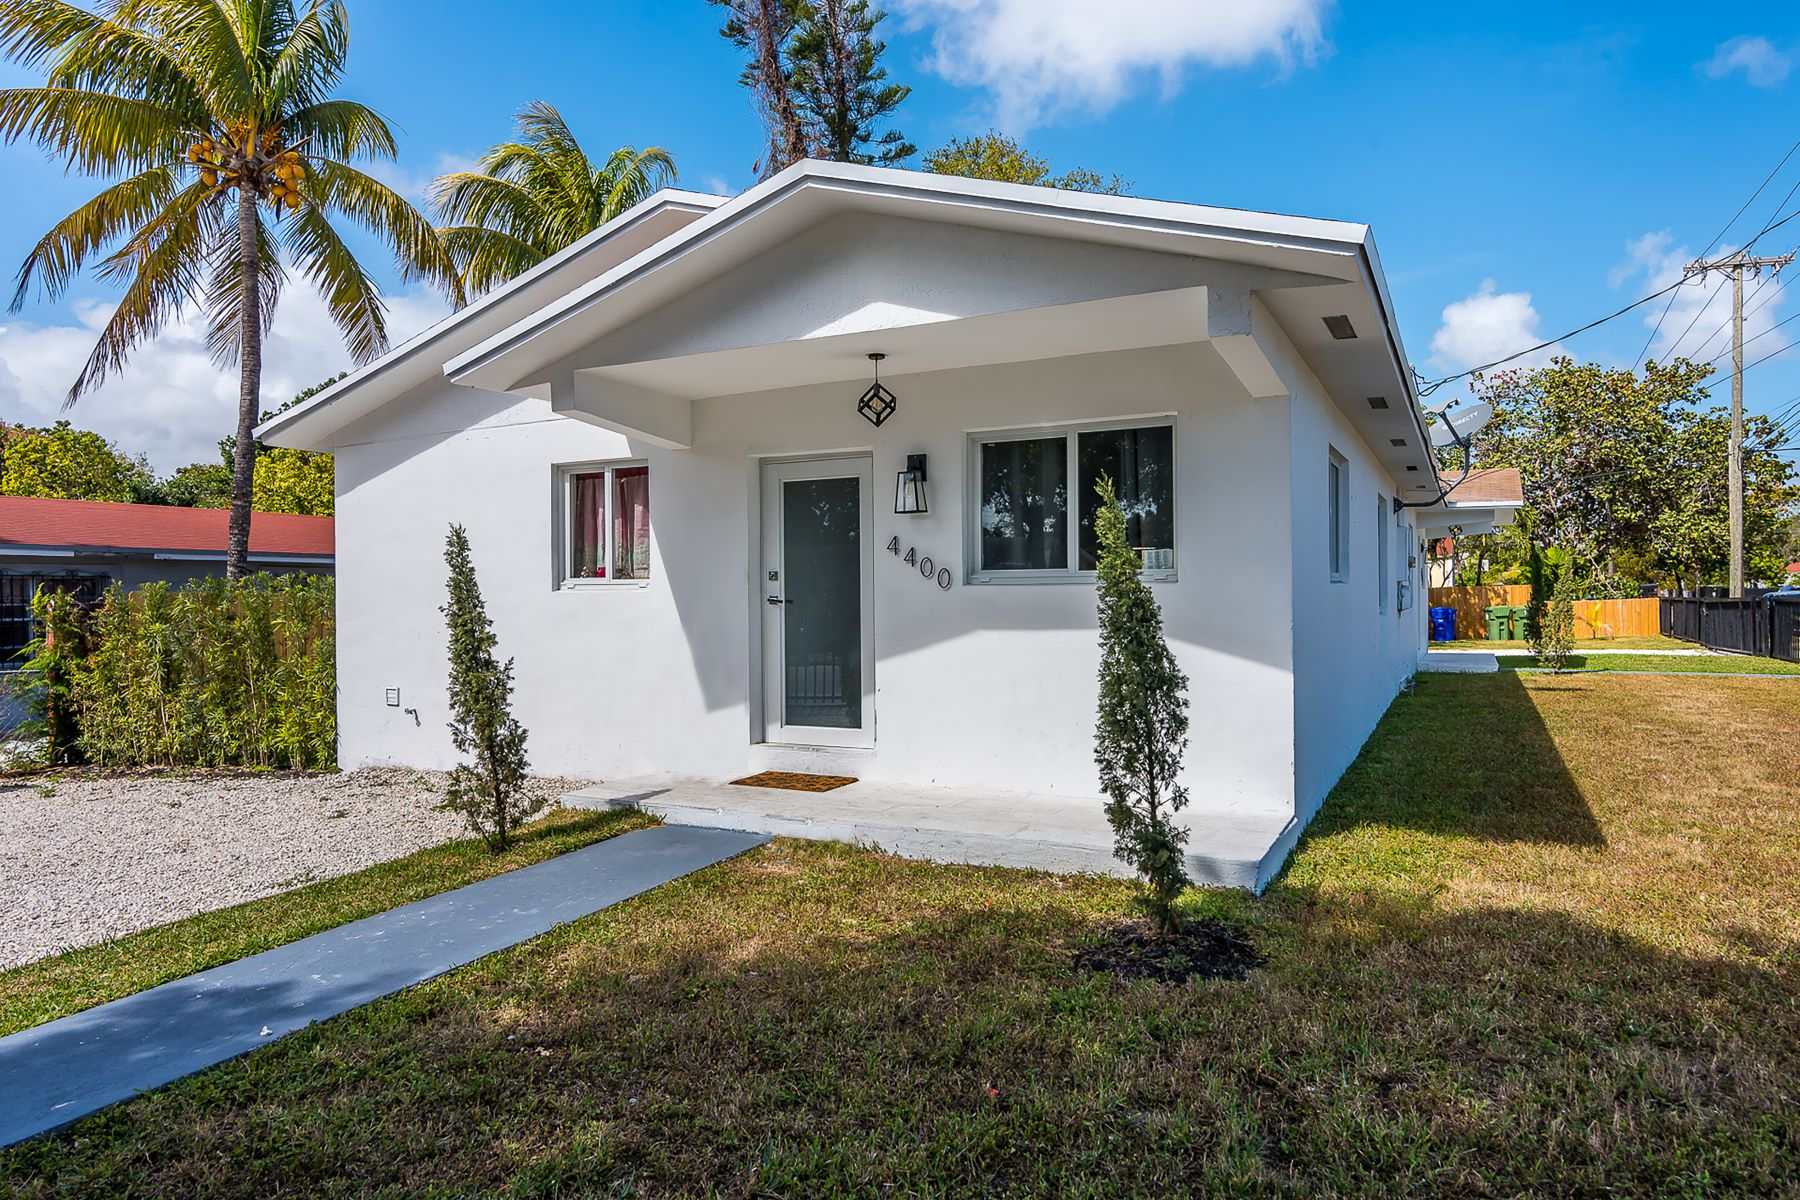 Duplex for Sale at 4400 Nw 1st Ave 4400 Nw 1st Ave Miami, Florida 33127 United States